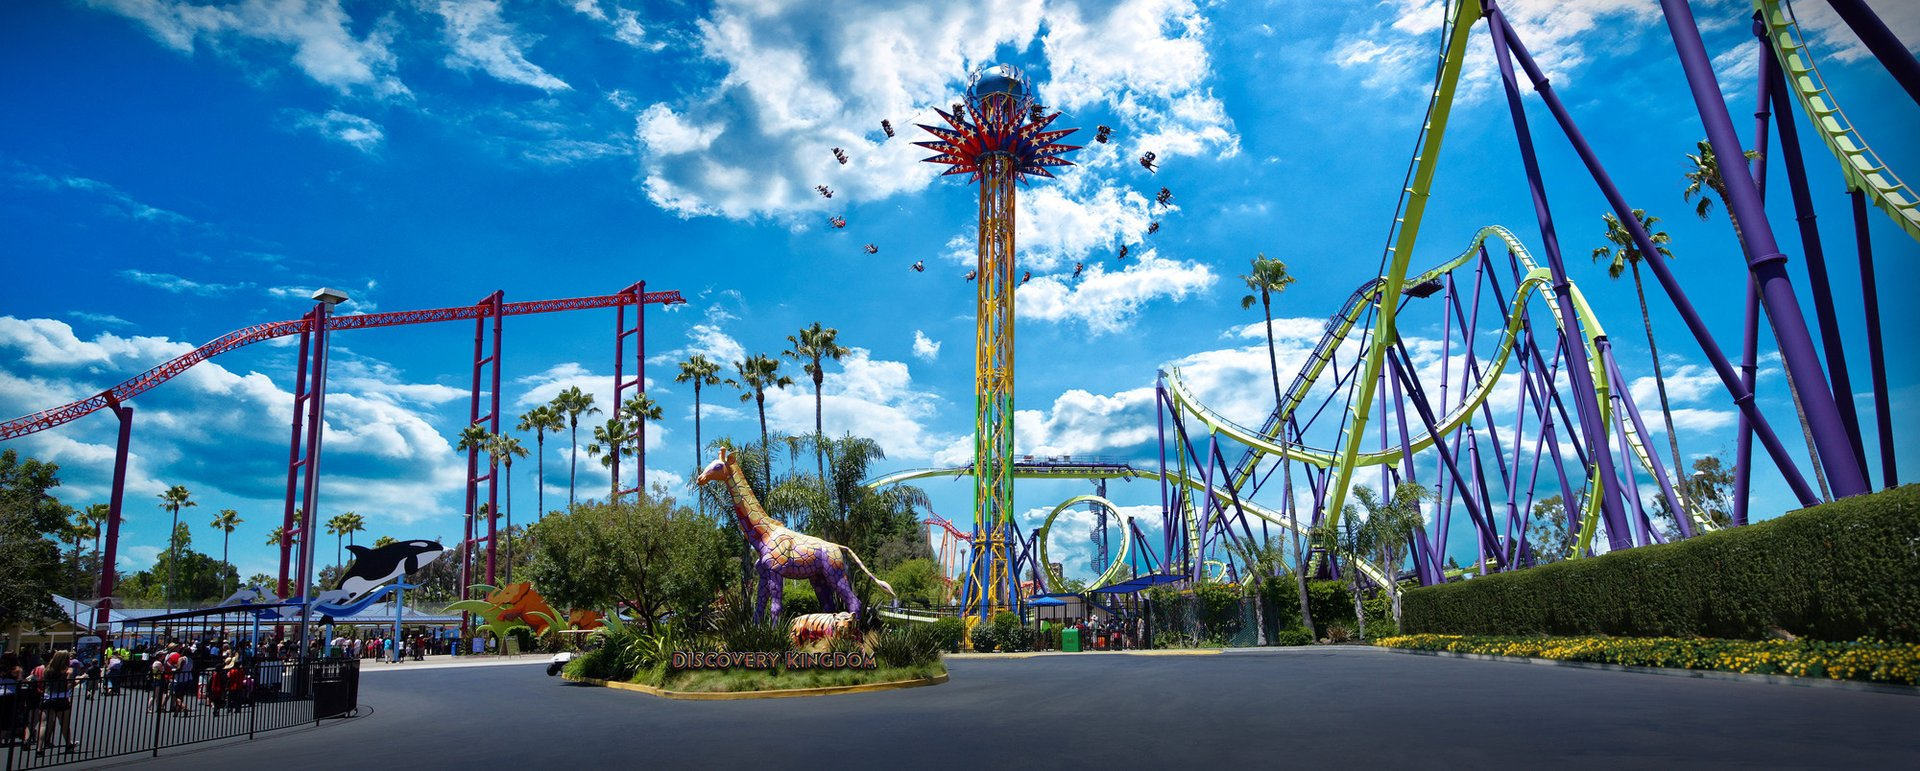 New York/New Jersey's biggest, most popular theme park featuring dozens of thrill rides, shows, and activities (Jackson, NJ).